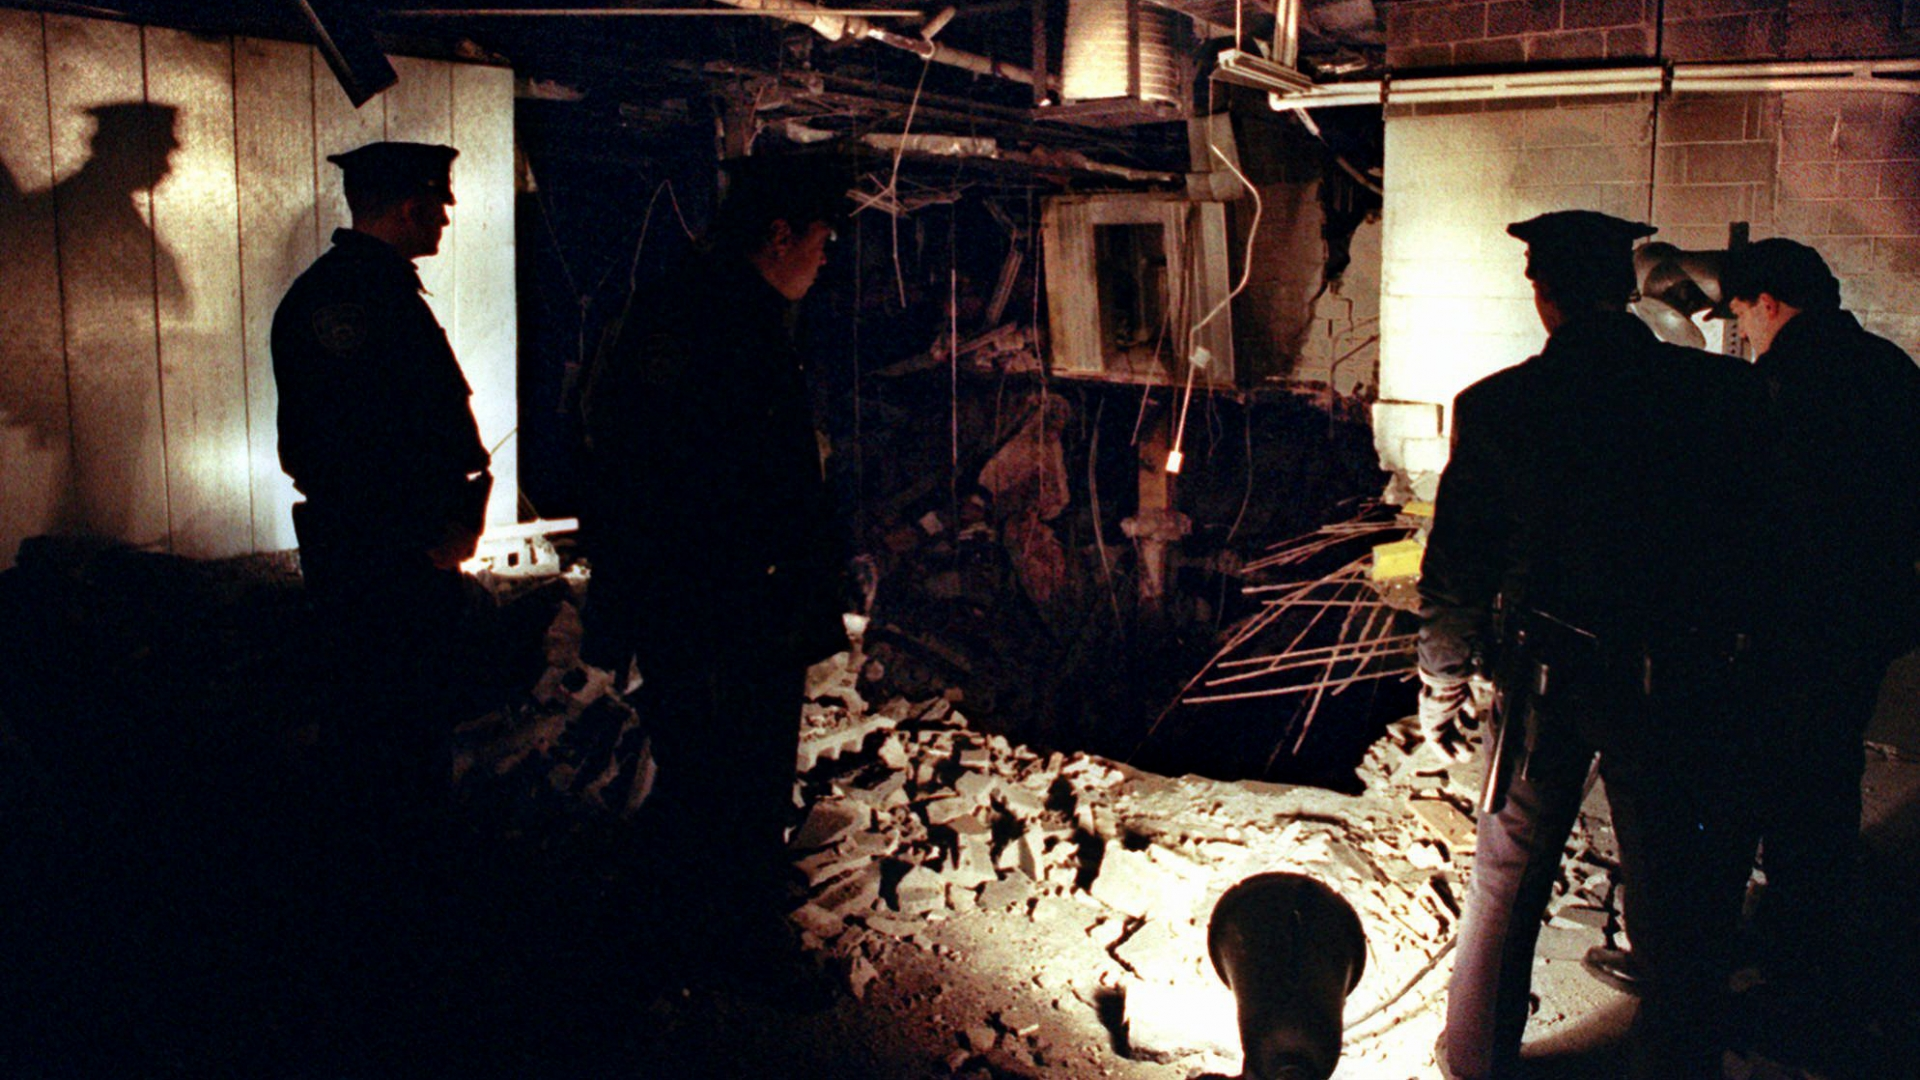 New York City Police officers view the damage caused by a truck bomb that exploded in the garage of New York's World Trade Center, 1993, that killed six people and injured more than 1,000. (Credit: Richard Drew/AP/REX/Shutterstock)